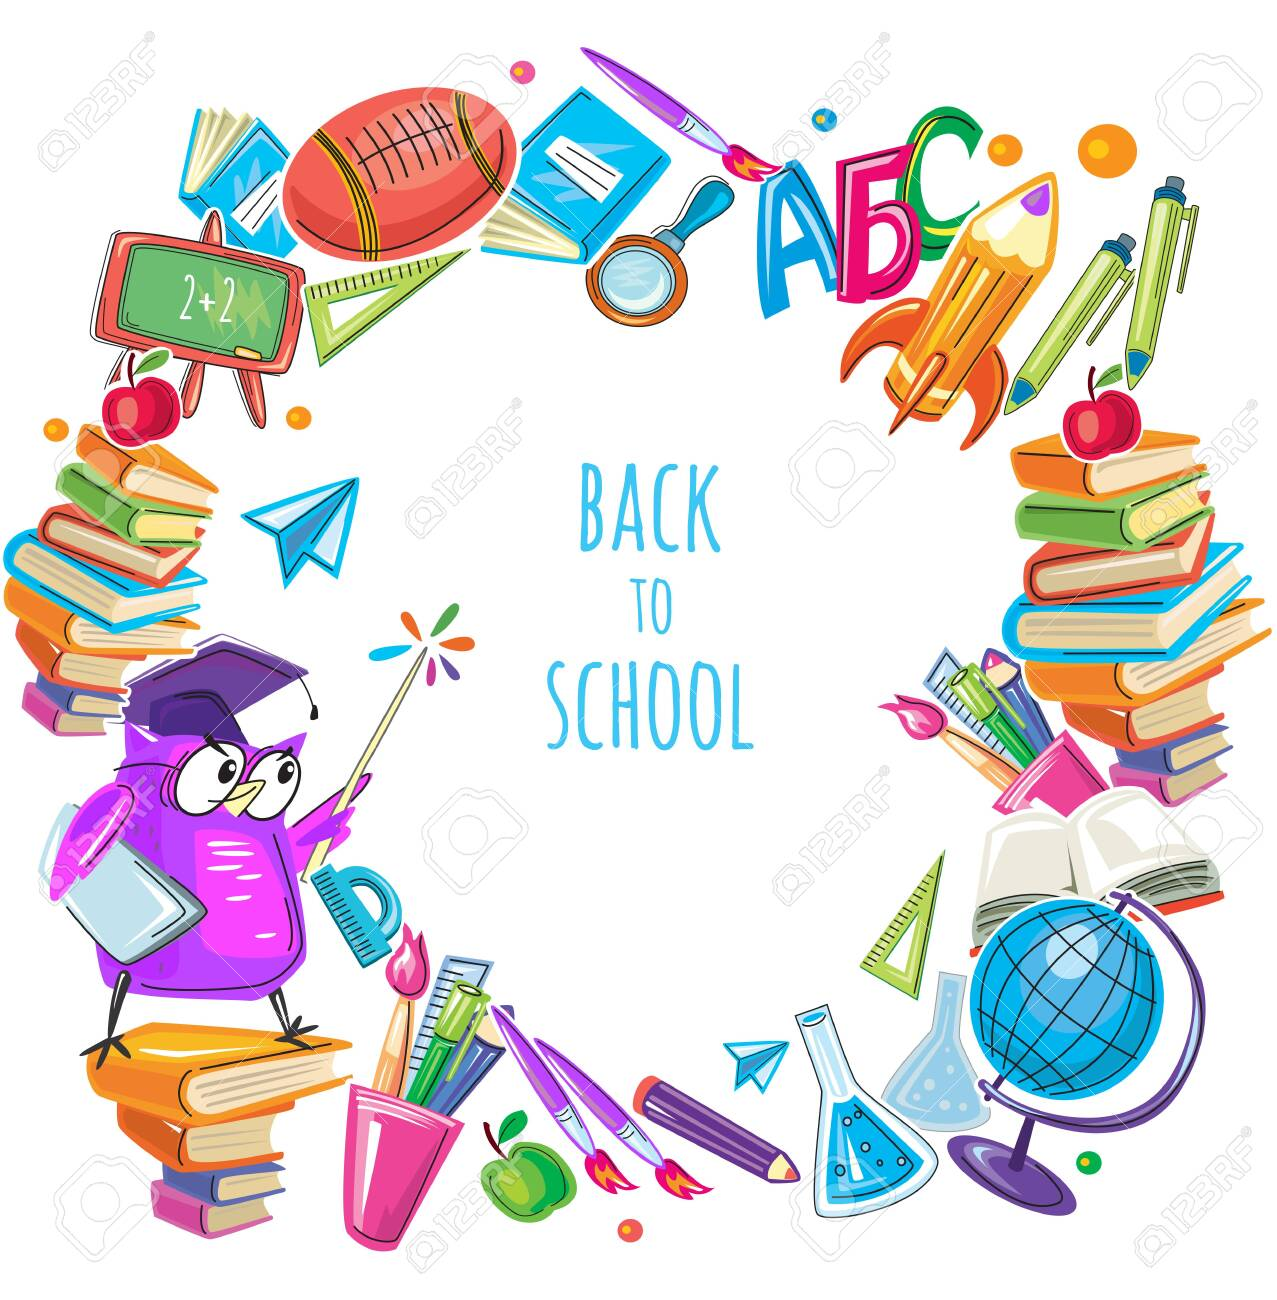 Back to school template frame with different school objects - 153356799